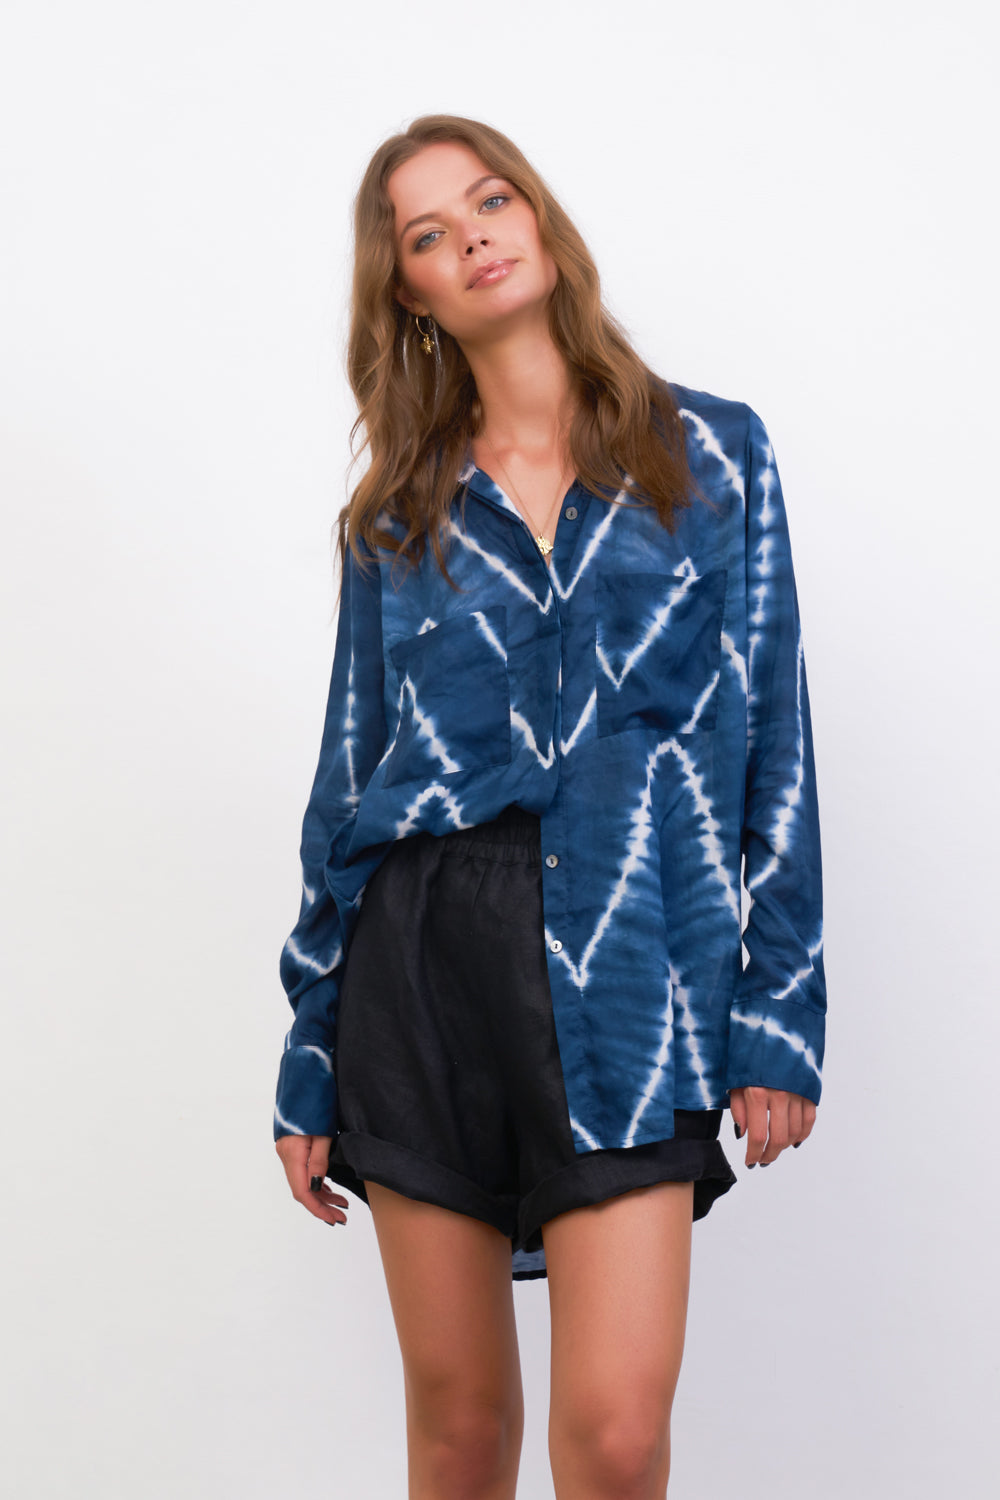 La Confection - The Cruise - Long Sleeve Button Up Shirt in Navy Tie Dye